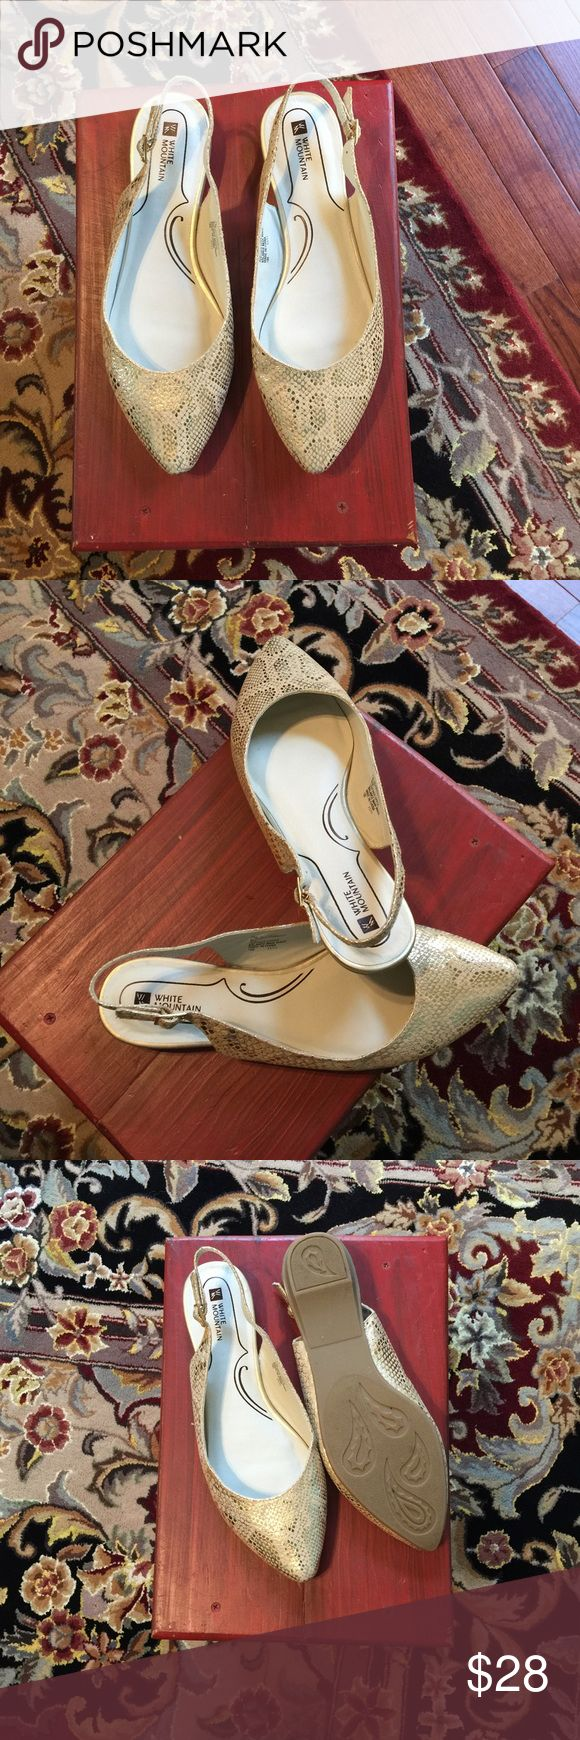 White mountain flats A festive sling back flat white mountain shoes. Great for a carefree day or night fun time. white mountain Shoes Flats & Loafers